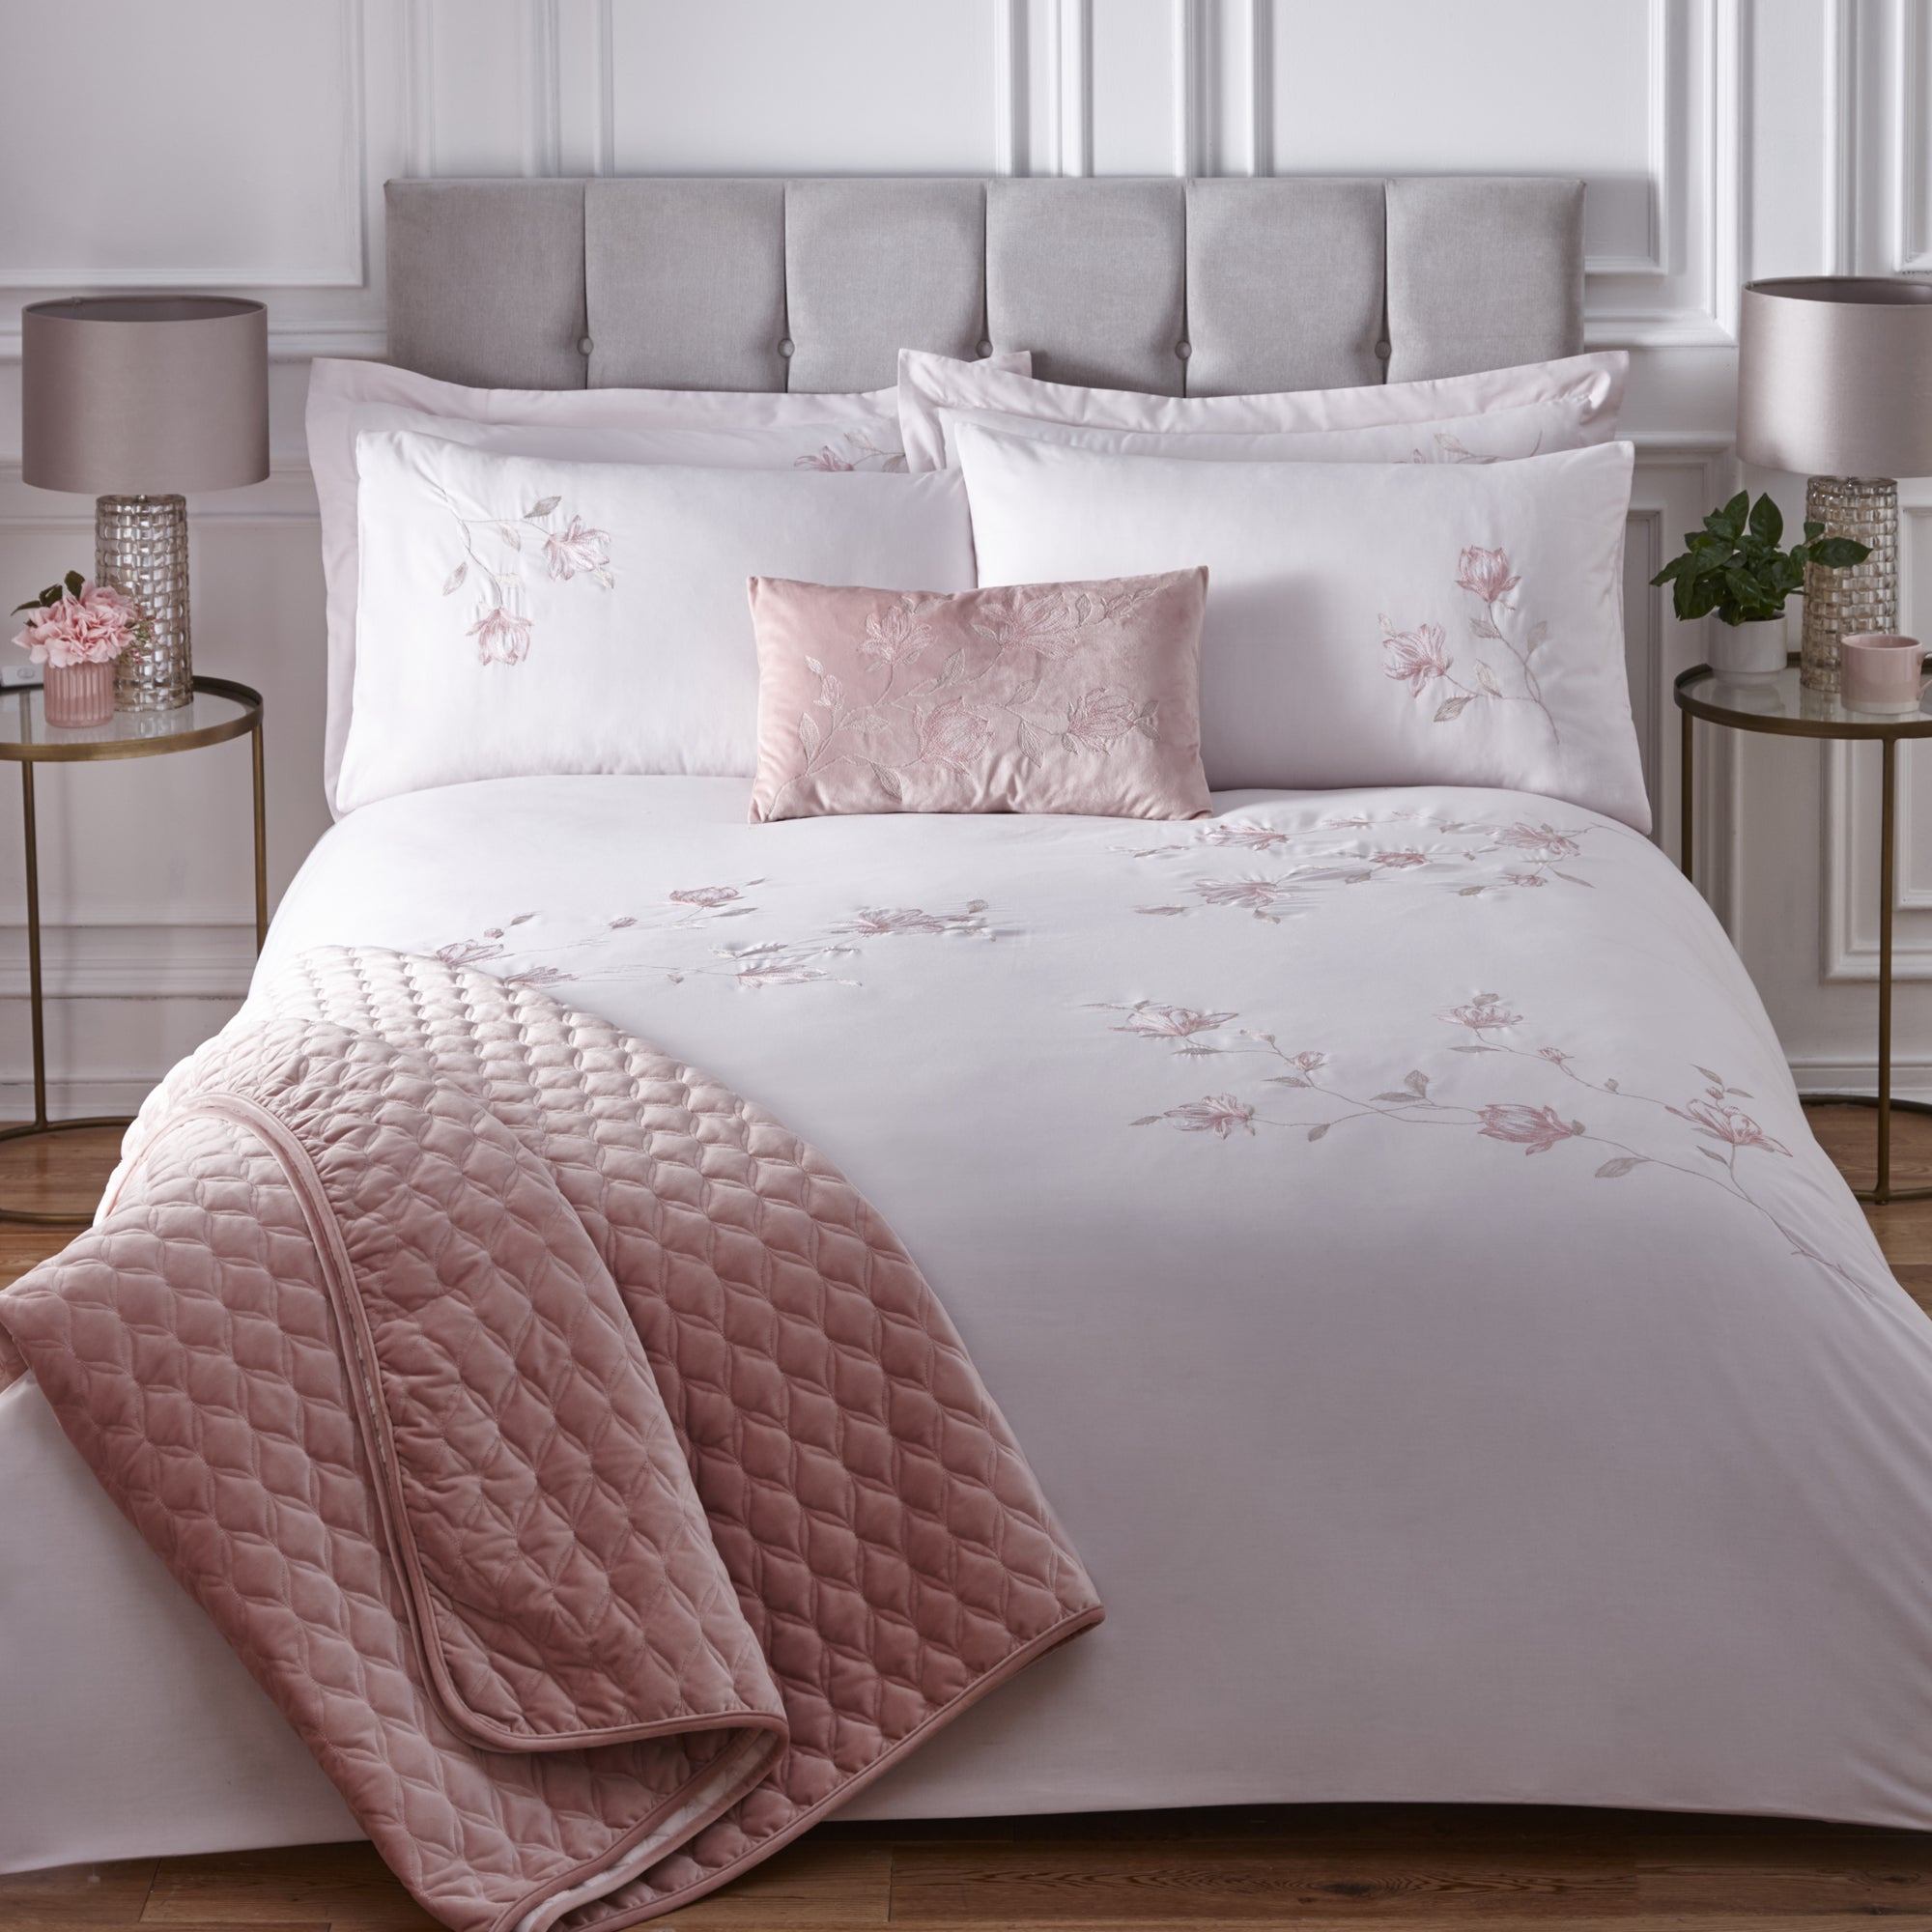 Dunelm Magnolia Pink Embroidered Duvet Cover and Pillowcase Set Pink | Double